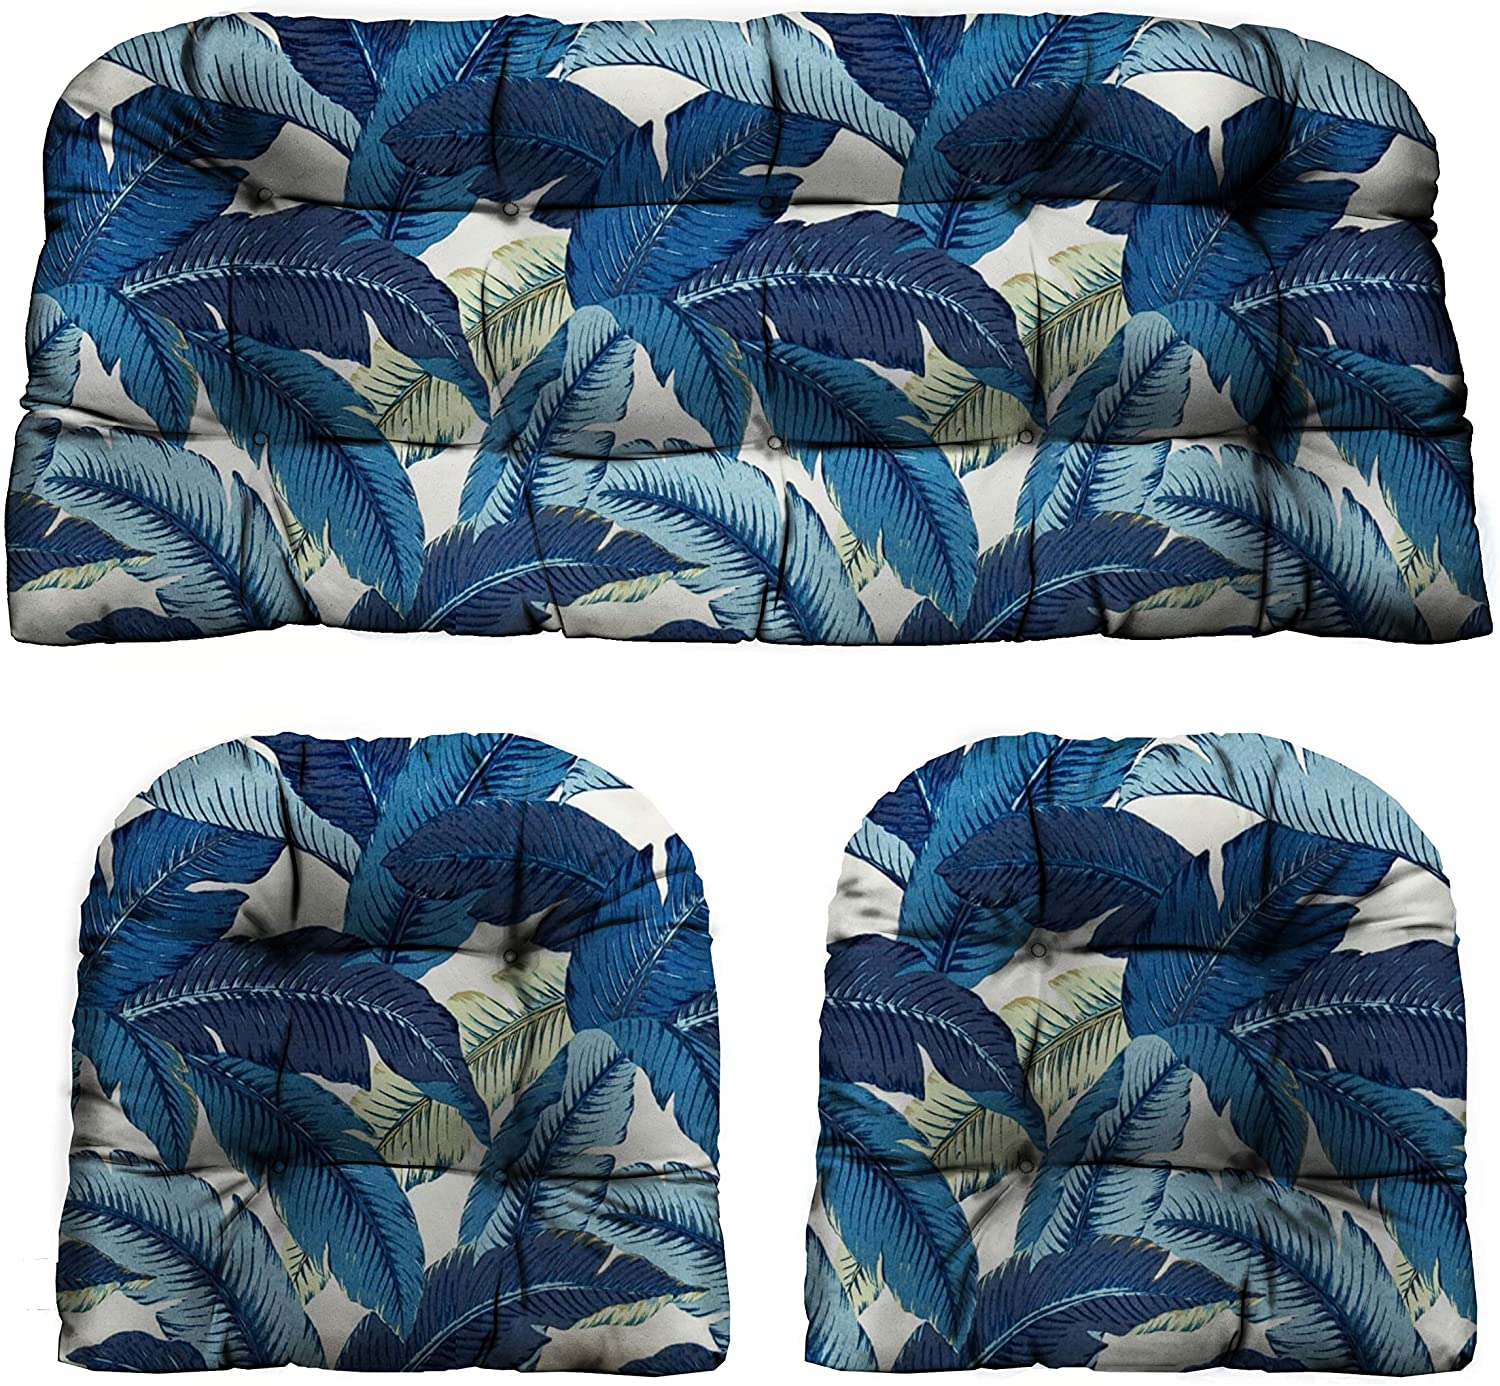 """RSH Décor Indoor/Outdoor Decorative 3 Piece Love Seat/Settee & 2 Chair Wicker Cushion Sets Made with Tommy Bahama Fabric (Standard ~ 2-19""""x19"""" & 41""""x19"""", Swaying Palm Blue Escape)"""